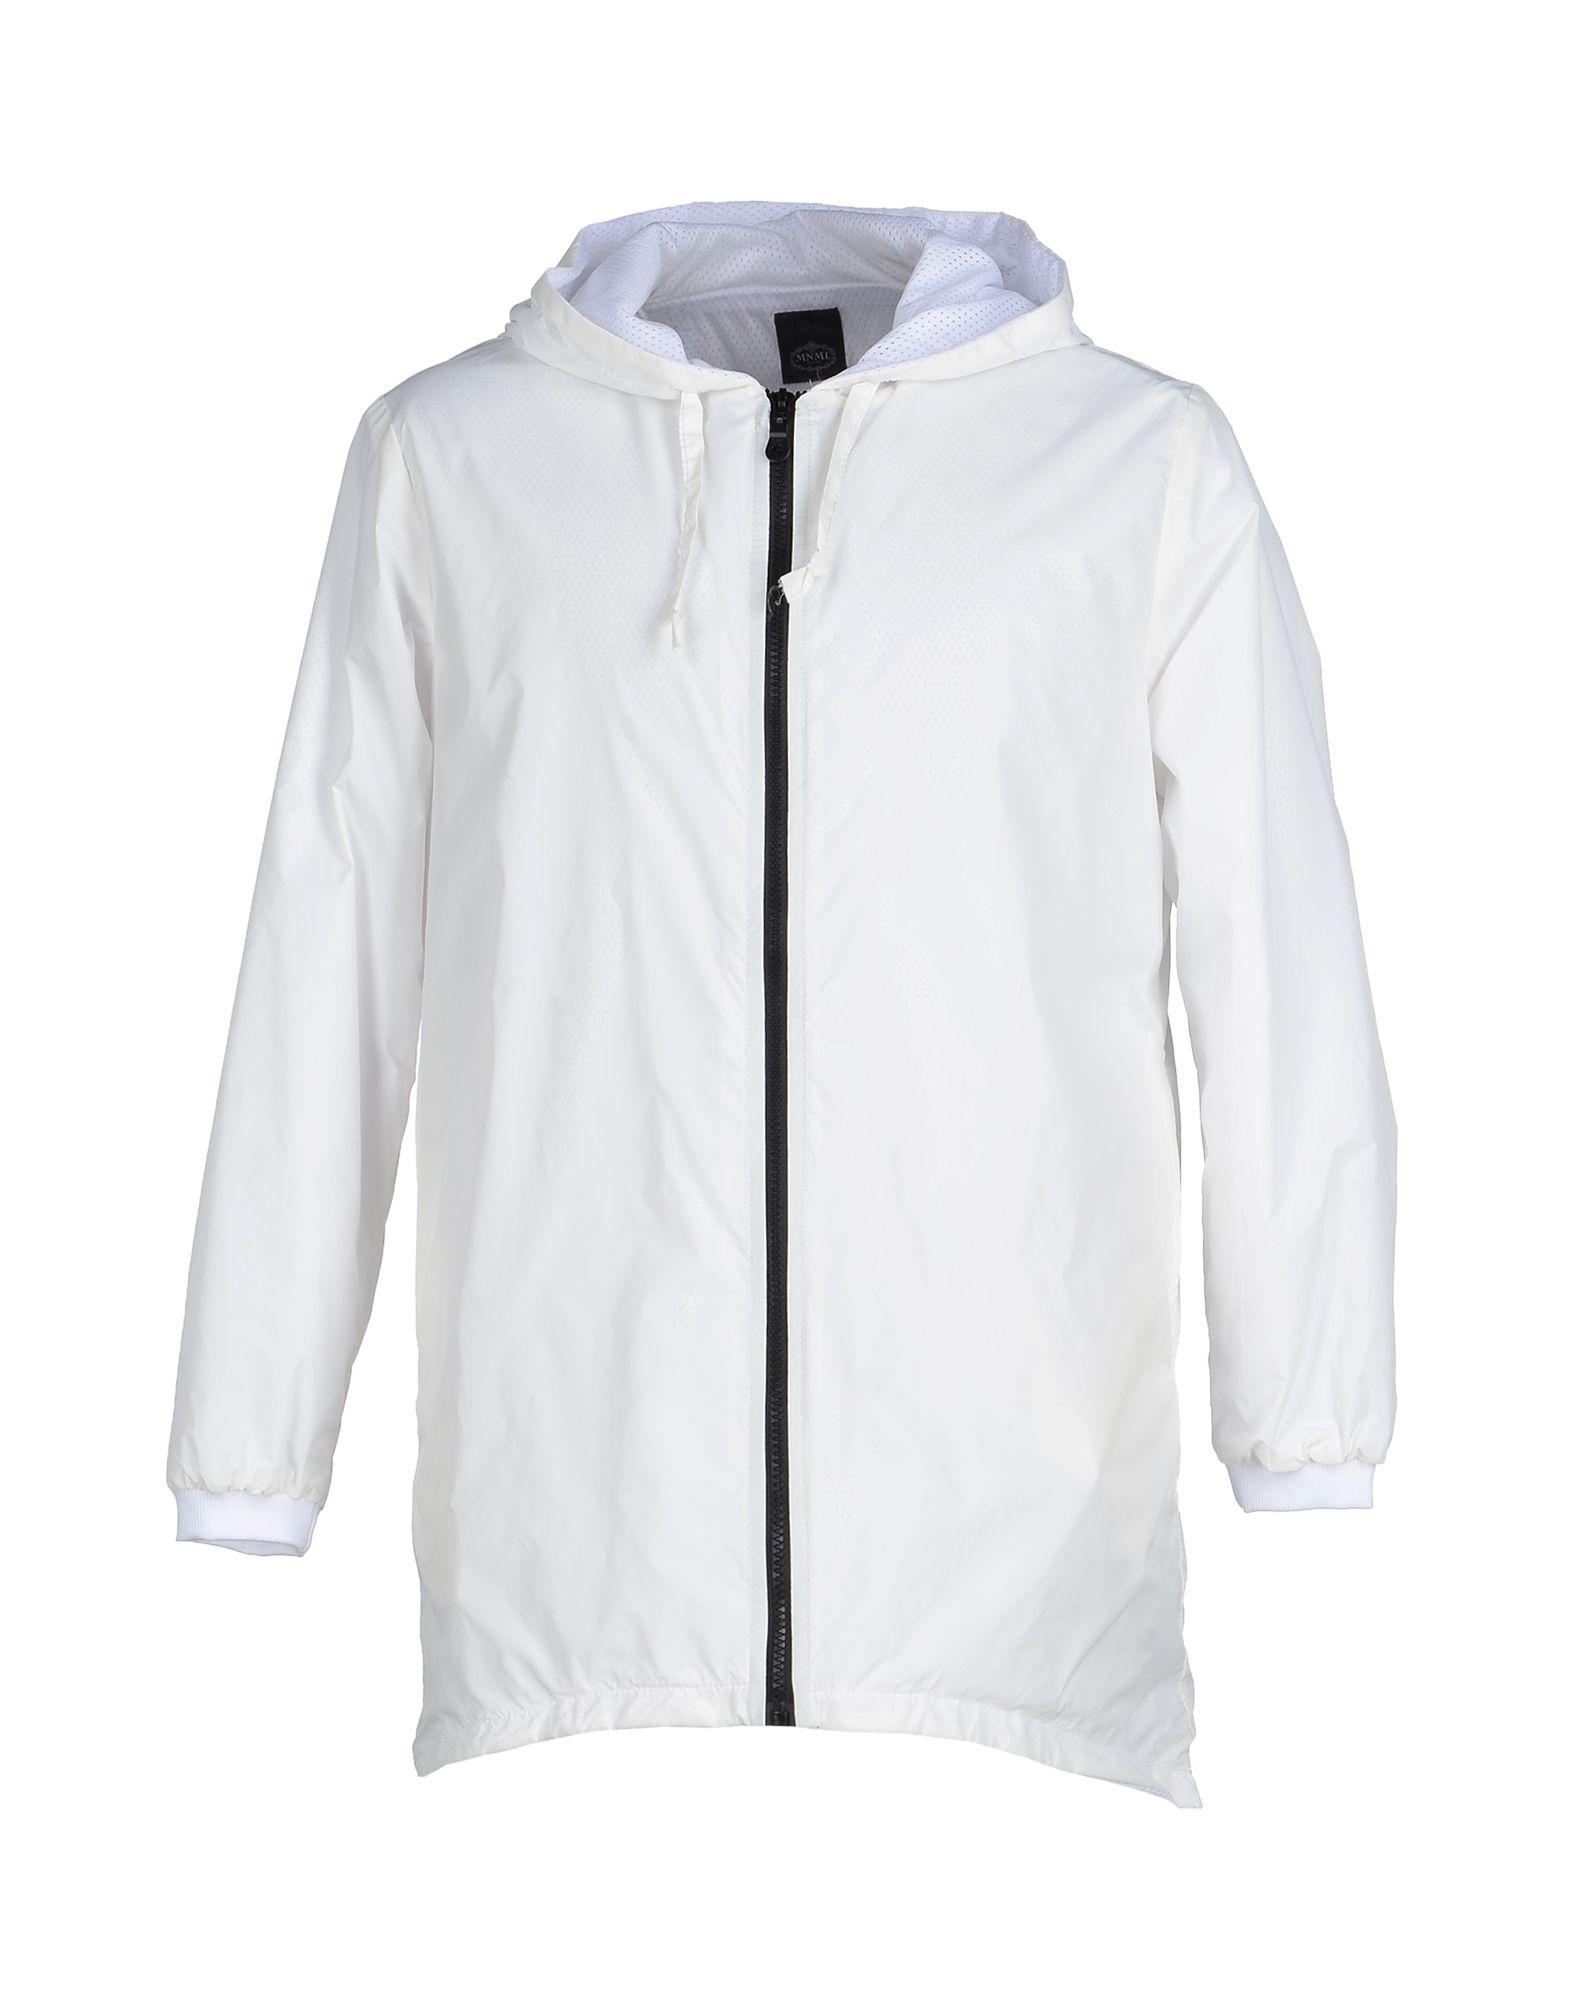 Cheap How Much New Styles For Sale COATS & JACKETS - Jackets Mnml Couture OBlYYJQAMw